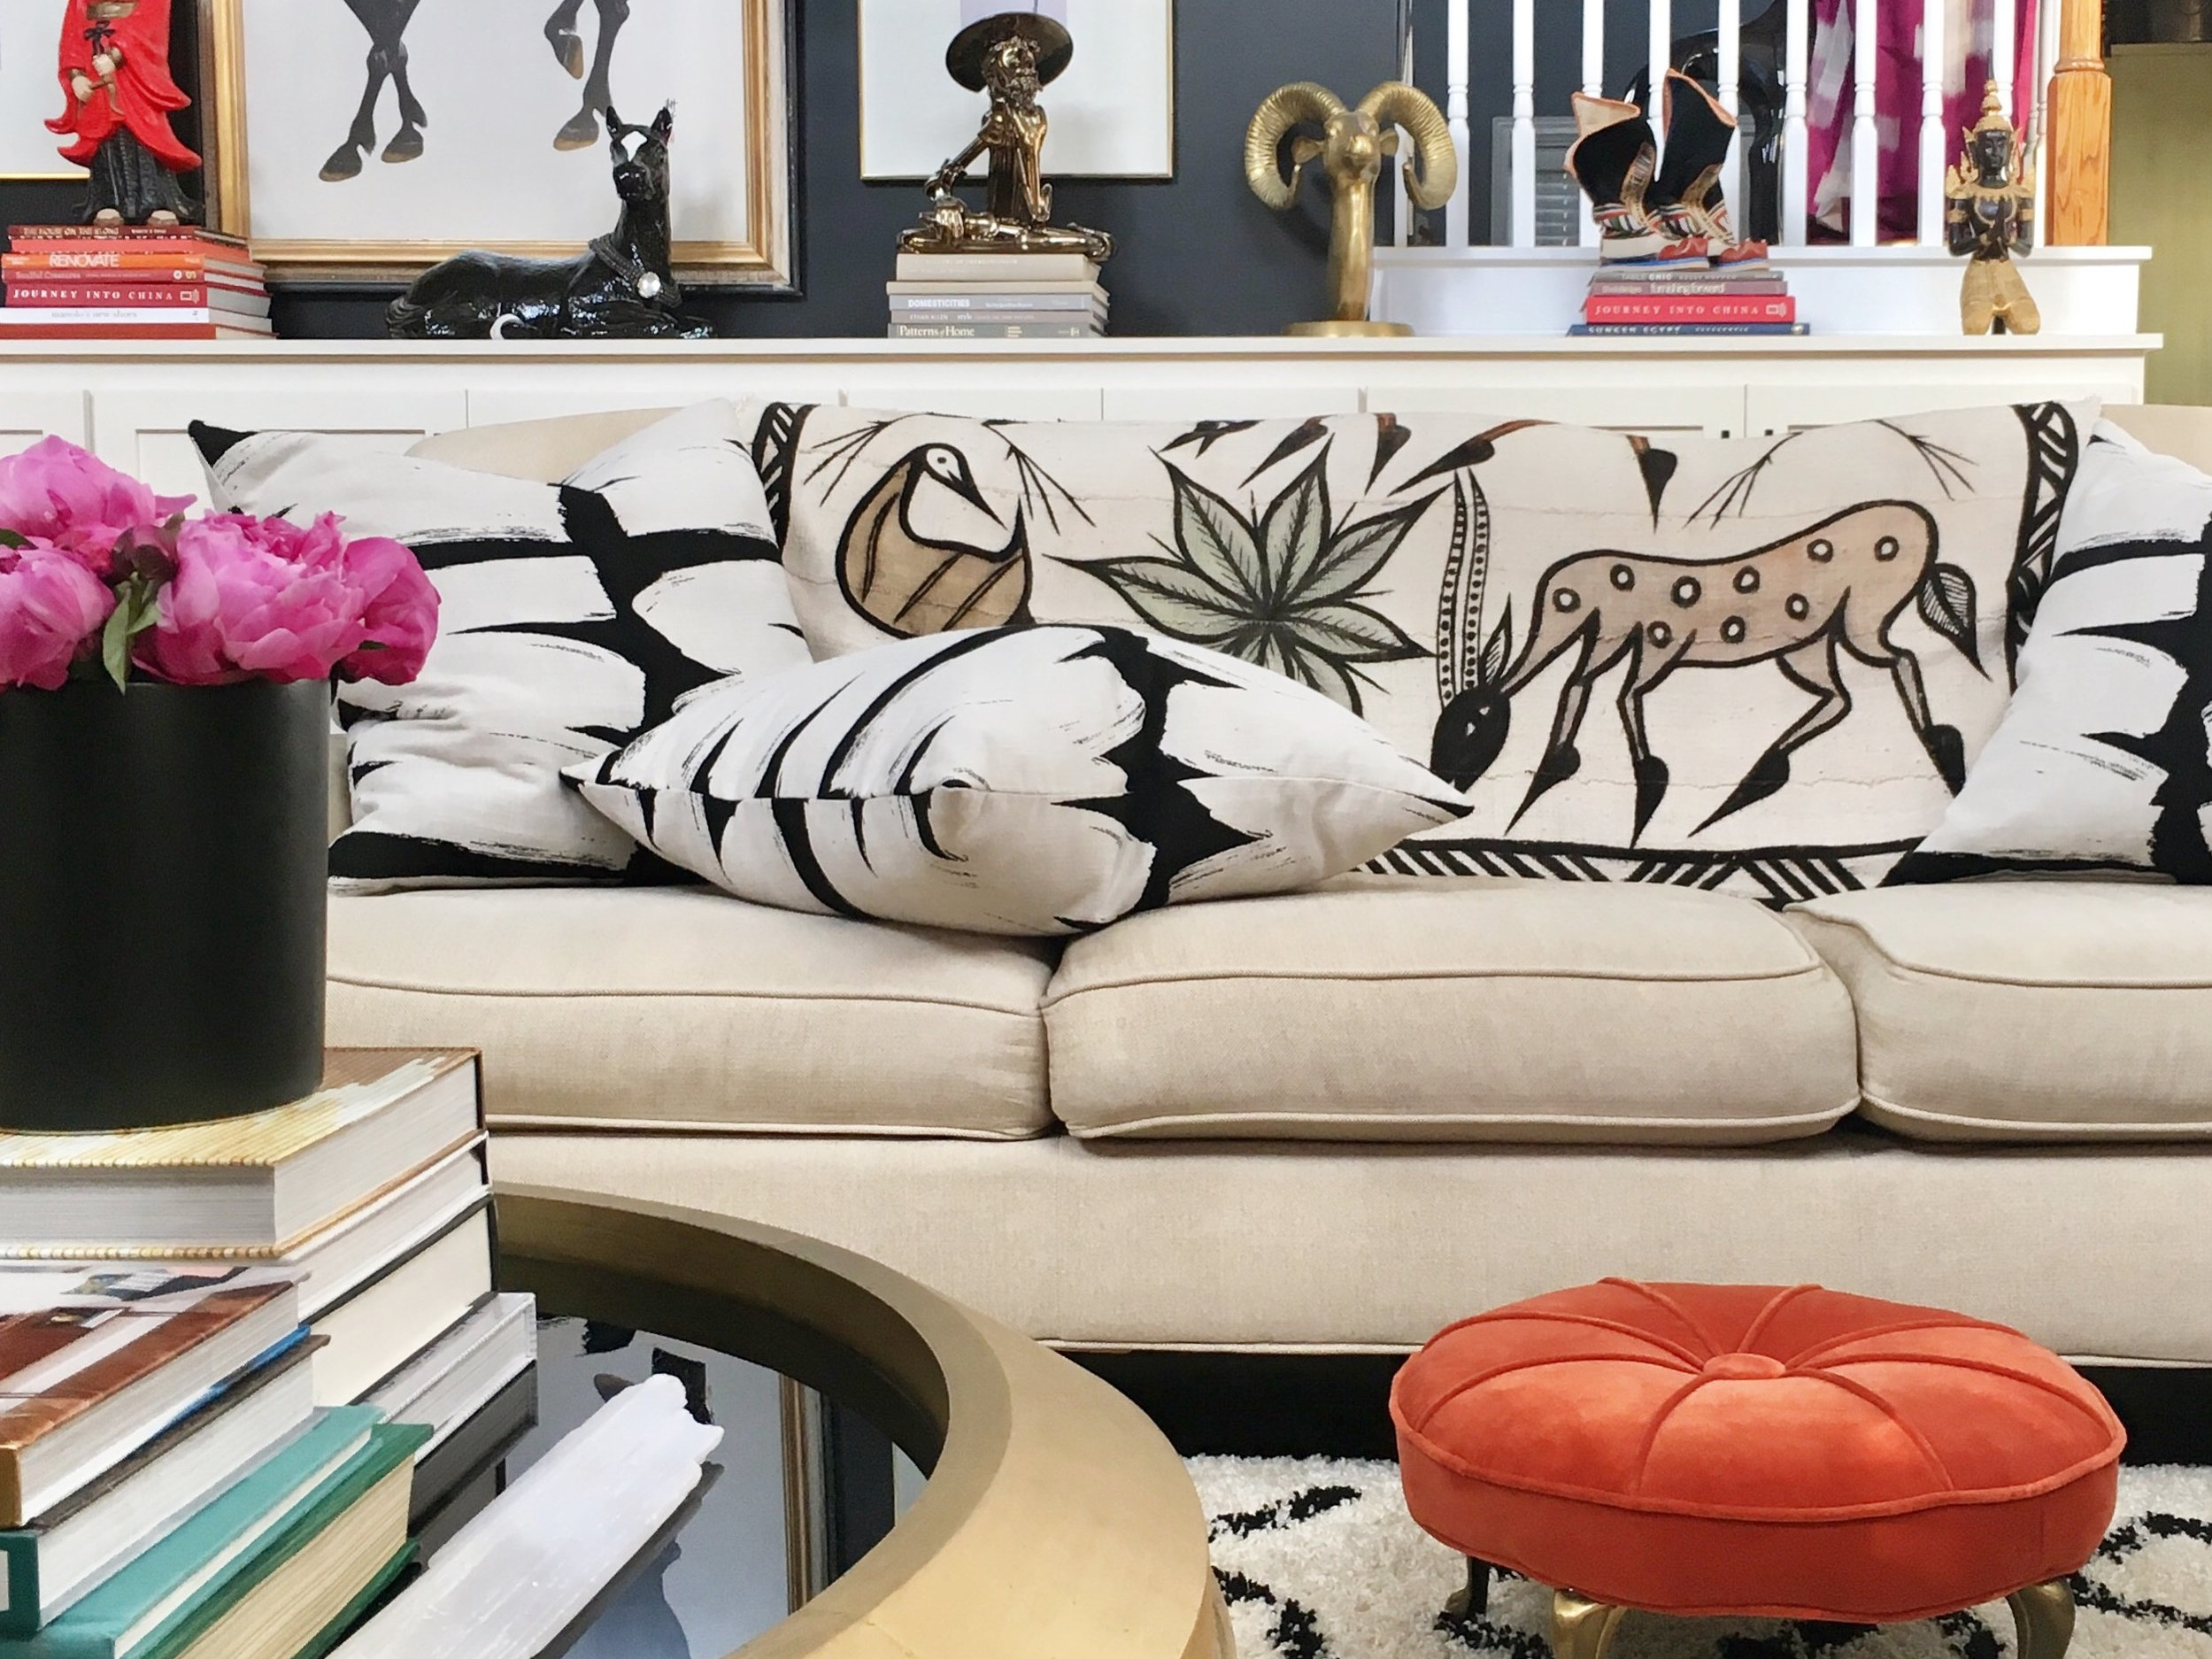 Decorate Your Home Like an Interior Designer With Thrift Store Finds - Michiel Perry of Black Southern Belle, asked three designers and thrift-shop aficionados to give their tips on how to thrift like a pro.